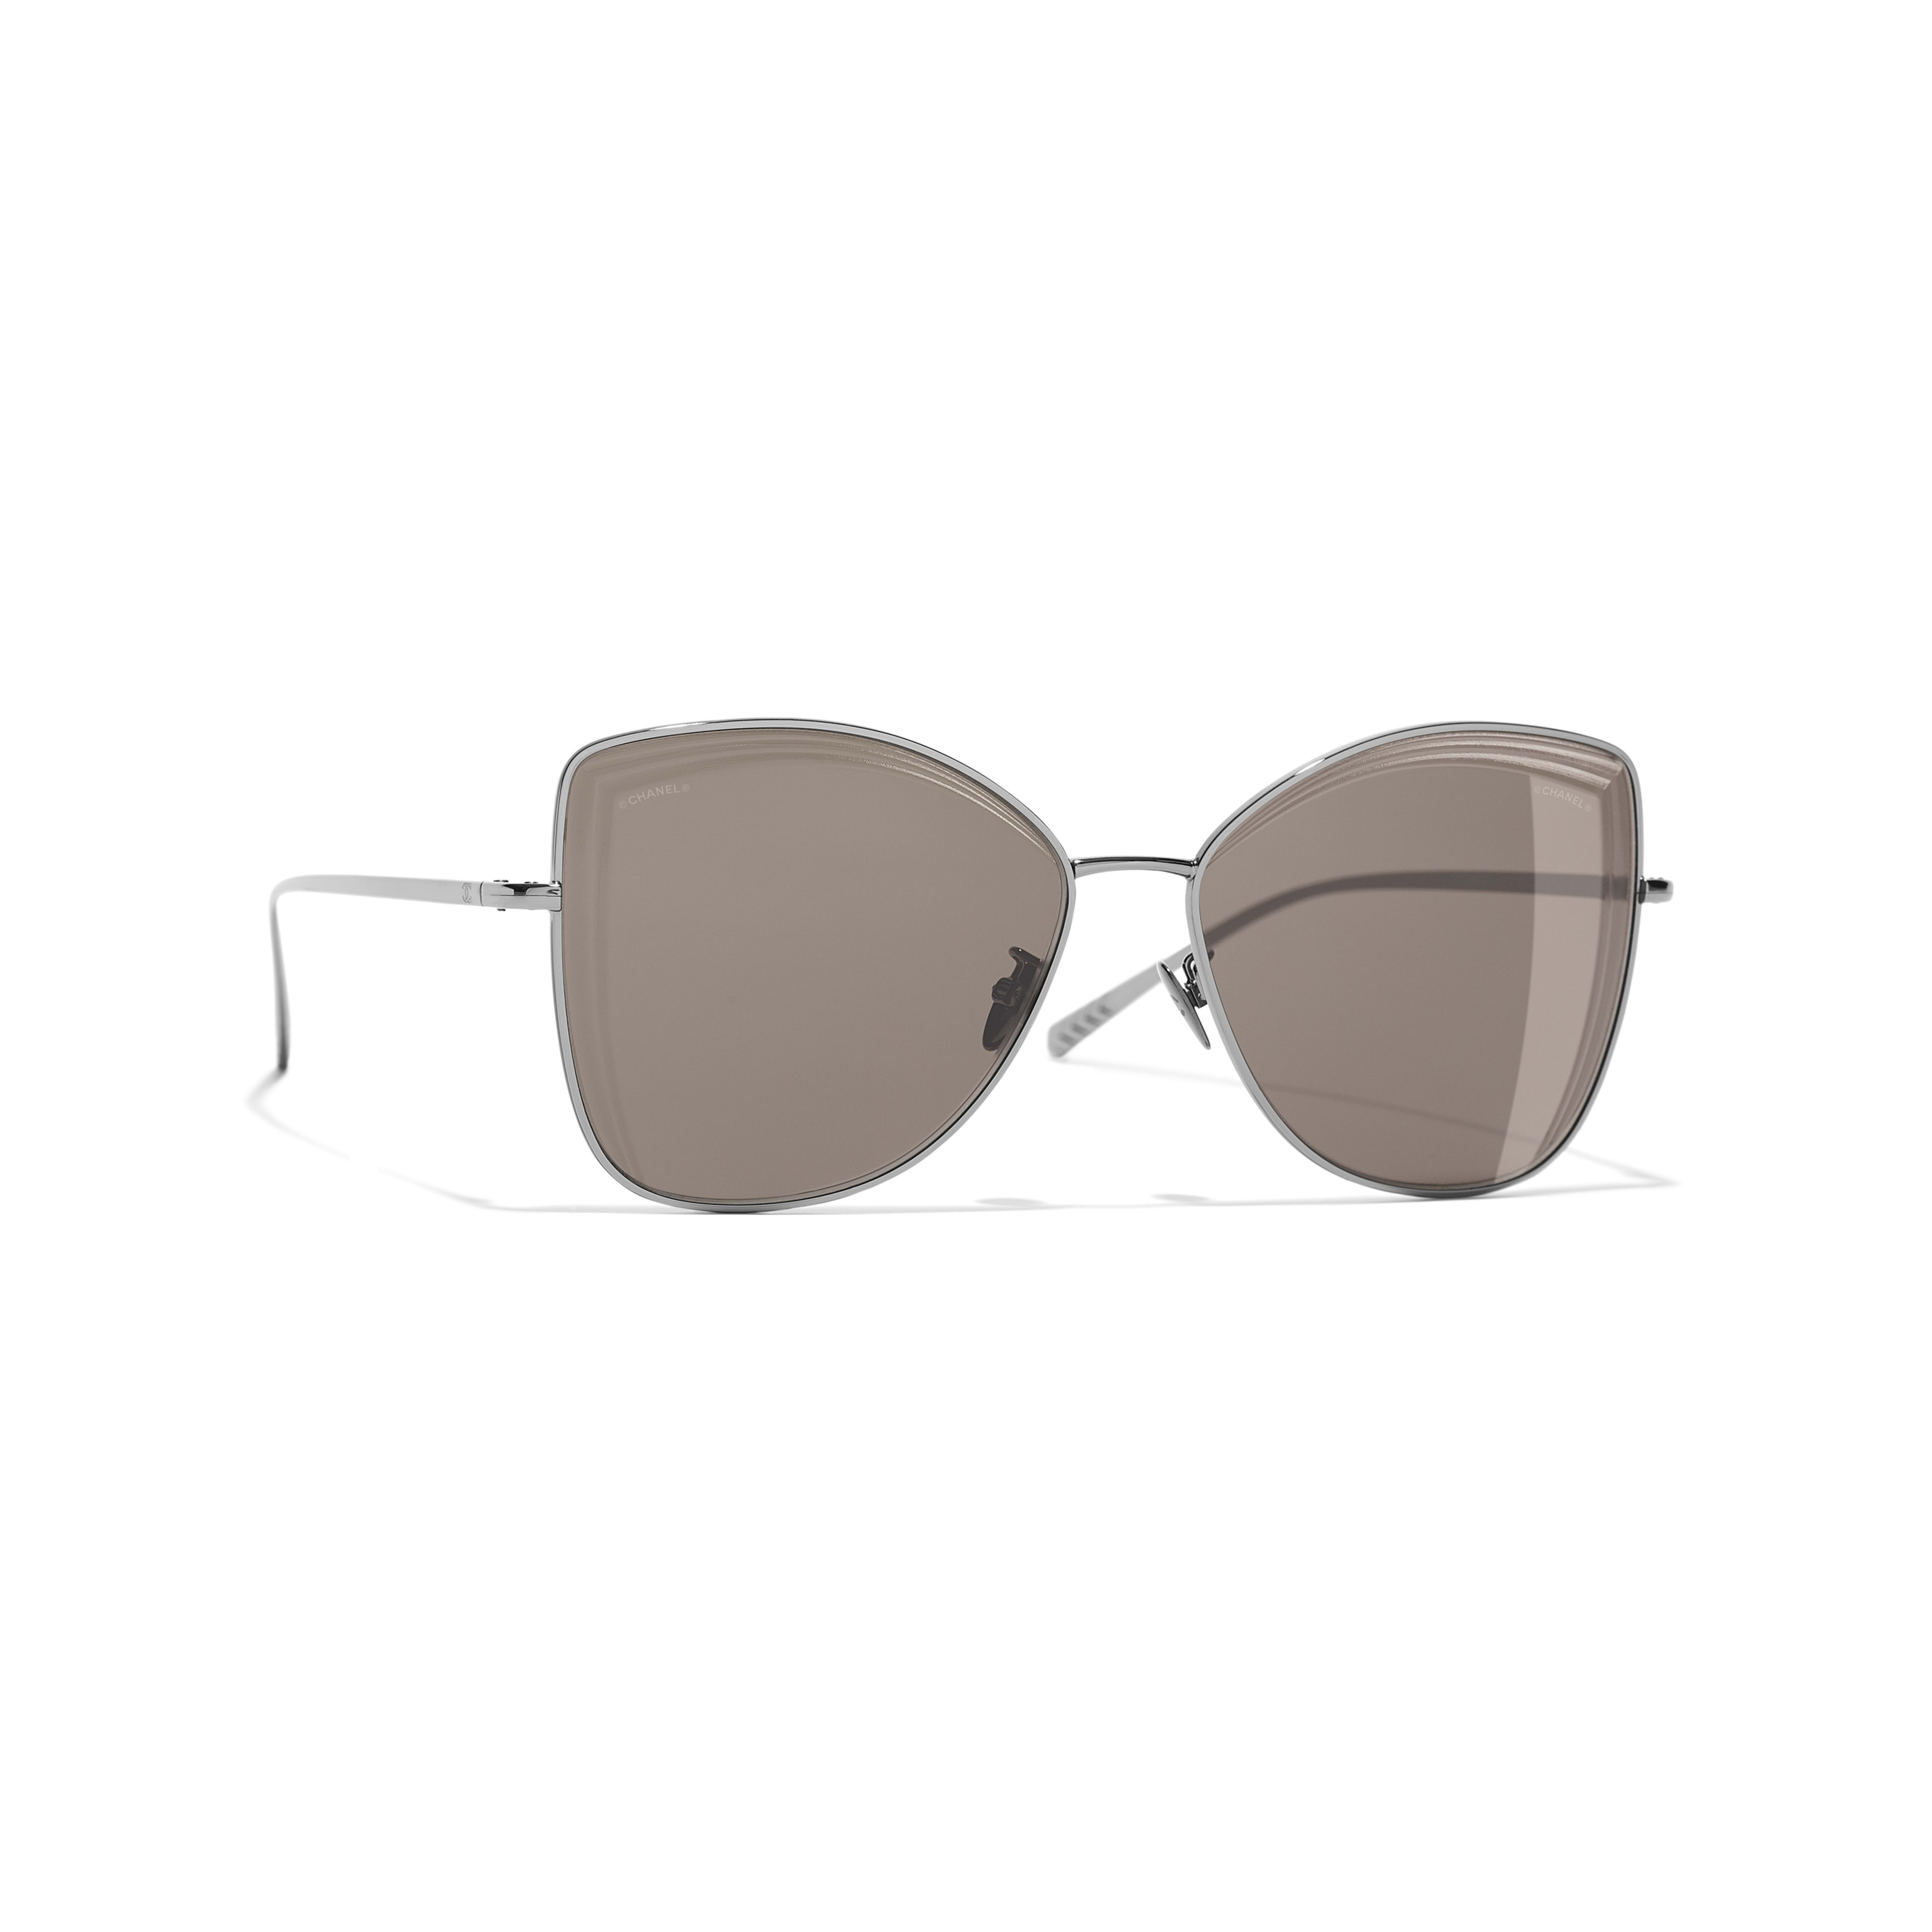 Butterfly Sunglasses - Dark Silver - Metal - Default view - see full sized version